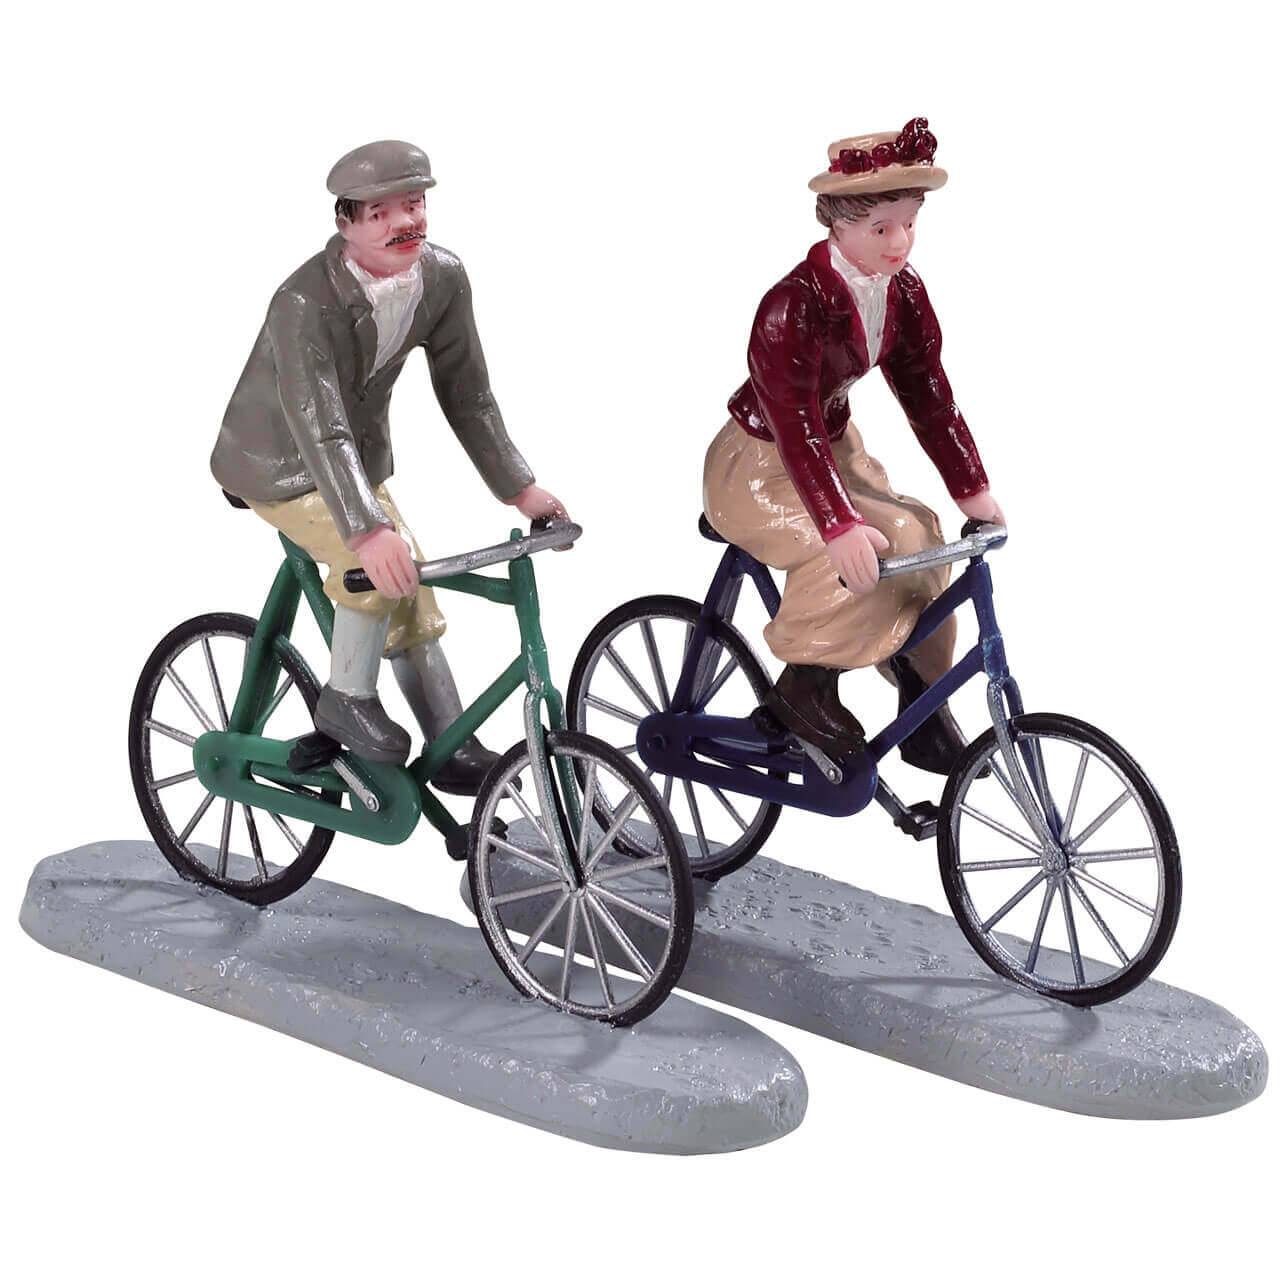 Lemax Village Collection Vintage Bicycle Set of 2 # 44790